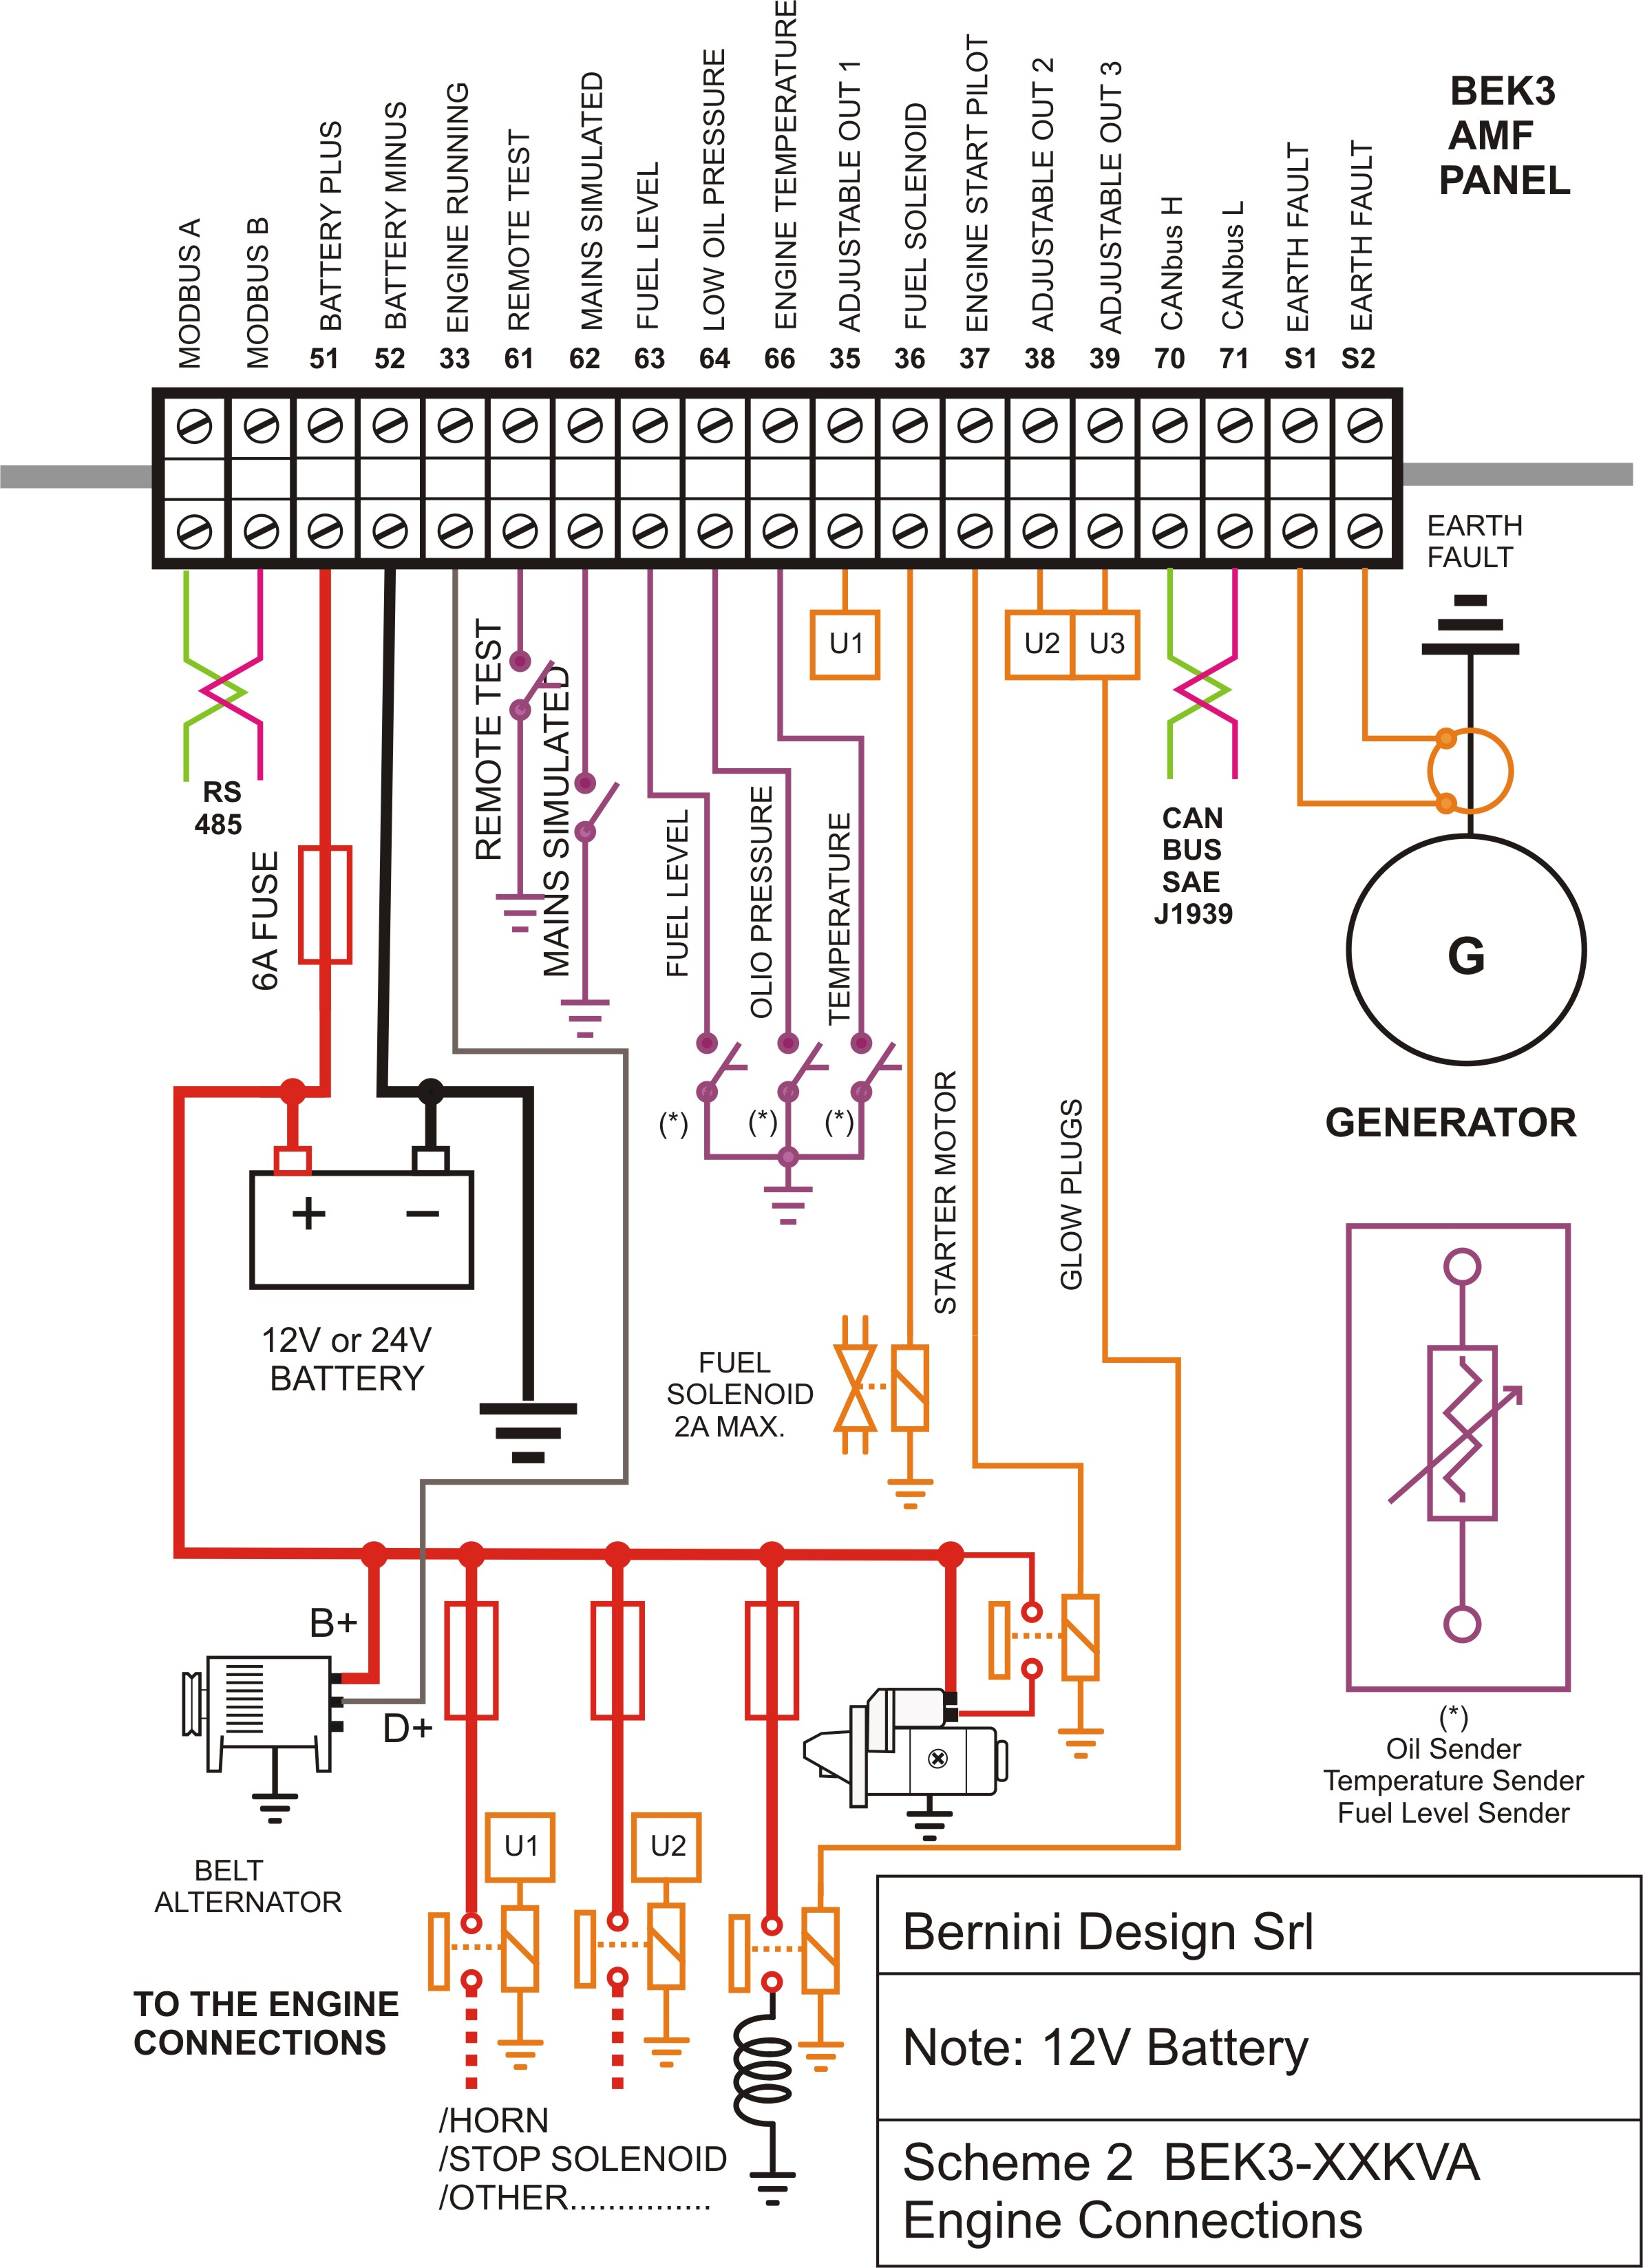 Diesel Generator Control Panel Wiring Diagram Engine Connections?resized665%2C9186ssld1 caterpillar generator schematic diagram efcaviation com Caterpillar SR4B Model Specification Sheet at aneh.co